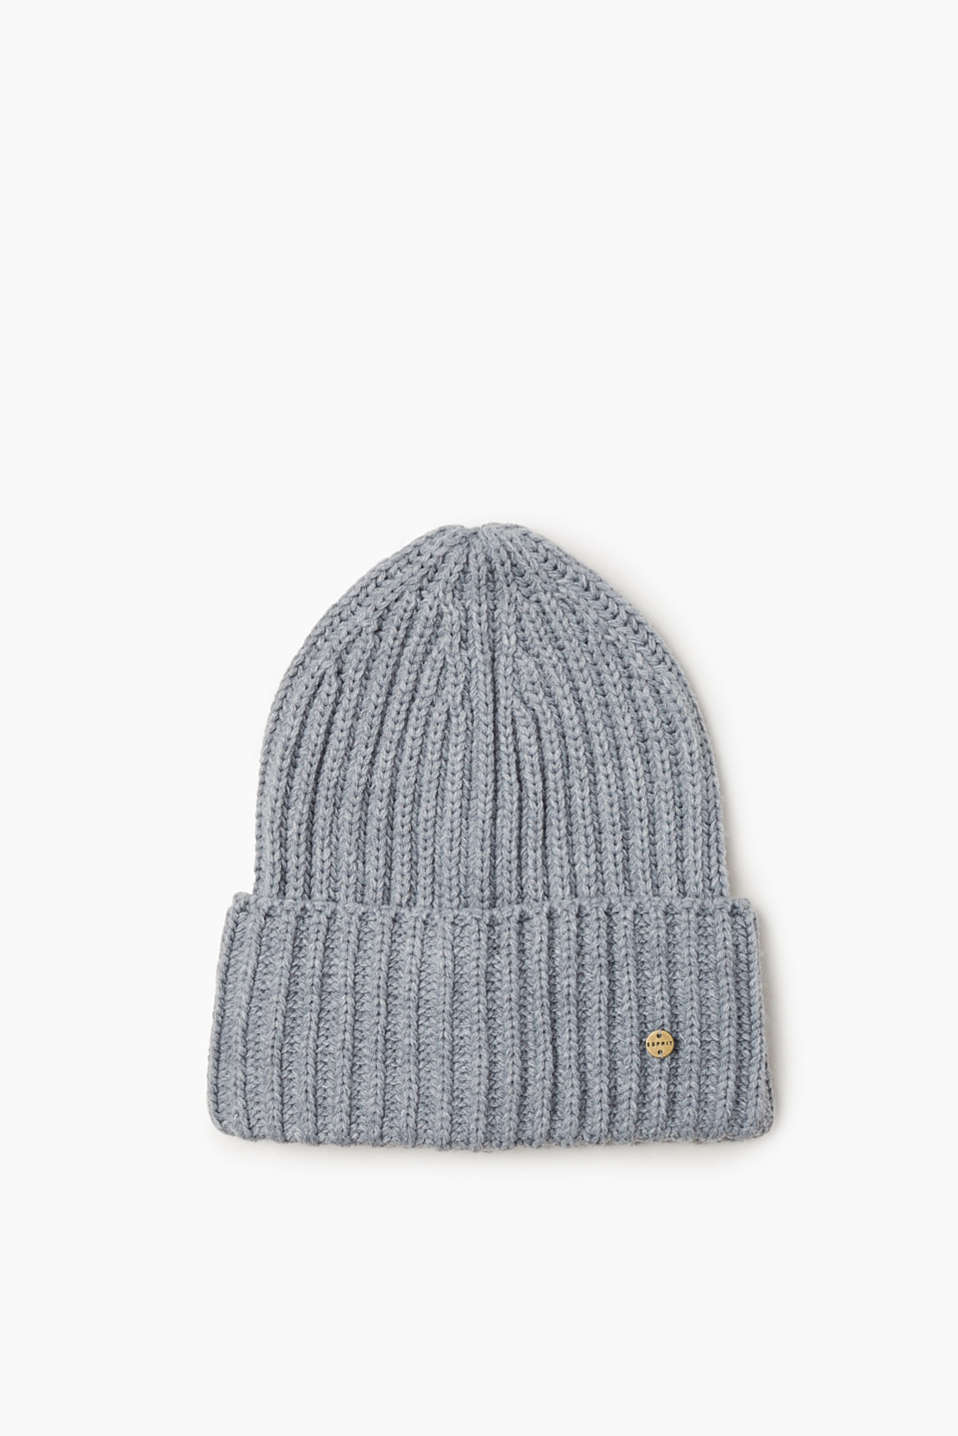 This ribbed knit beanie features a large turn-back cuff and a small logo appliqué.